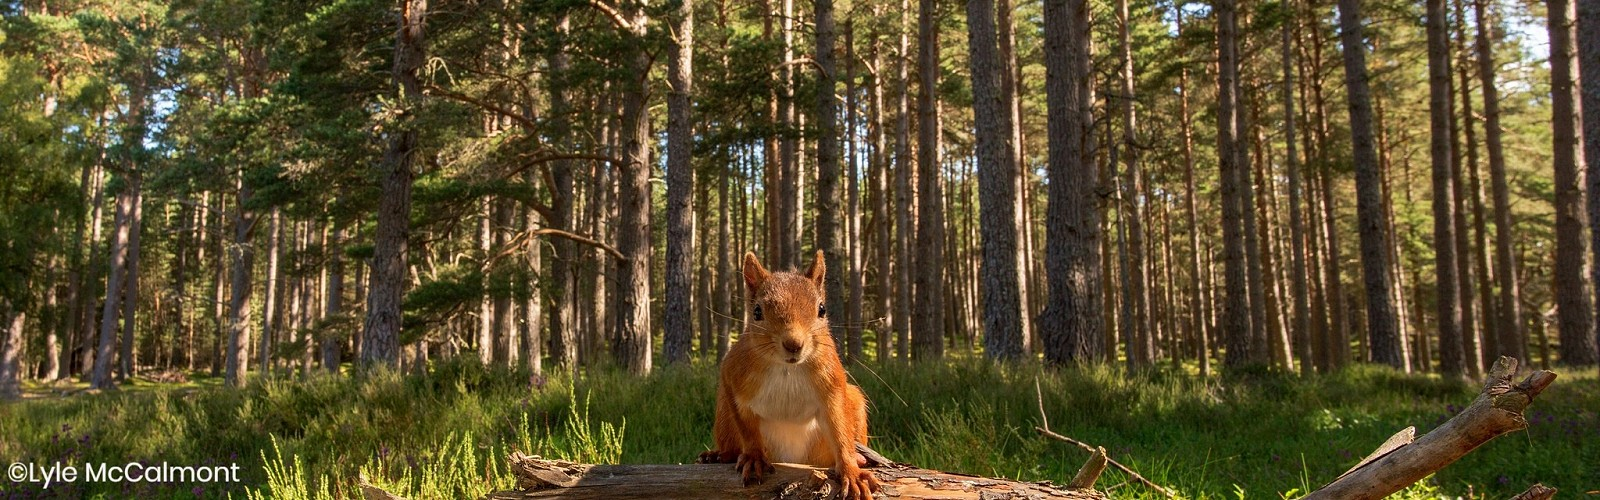 red squirrel on log (image: Lyle McCalmont)